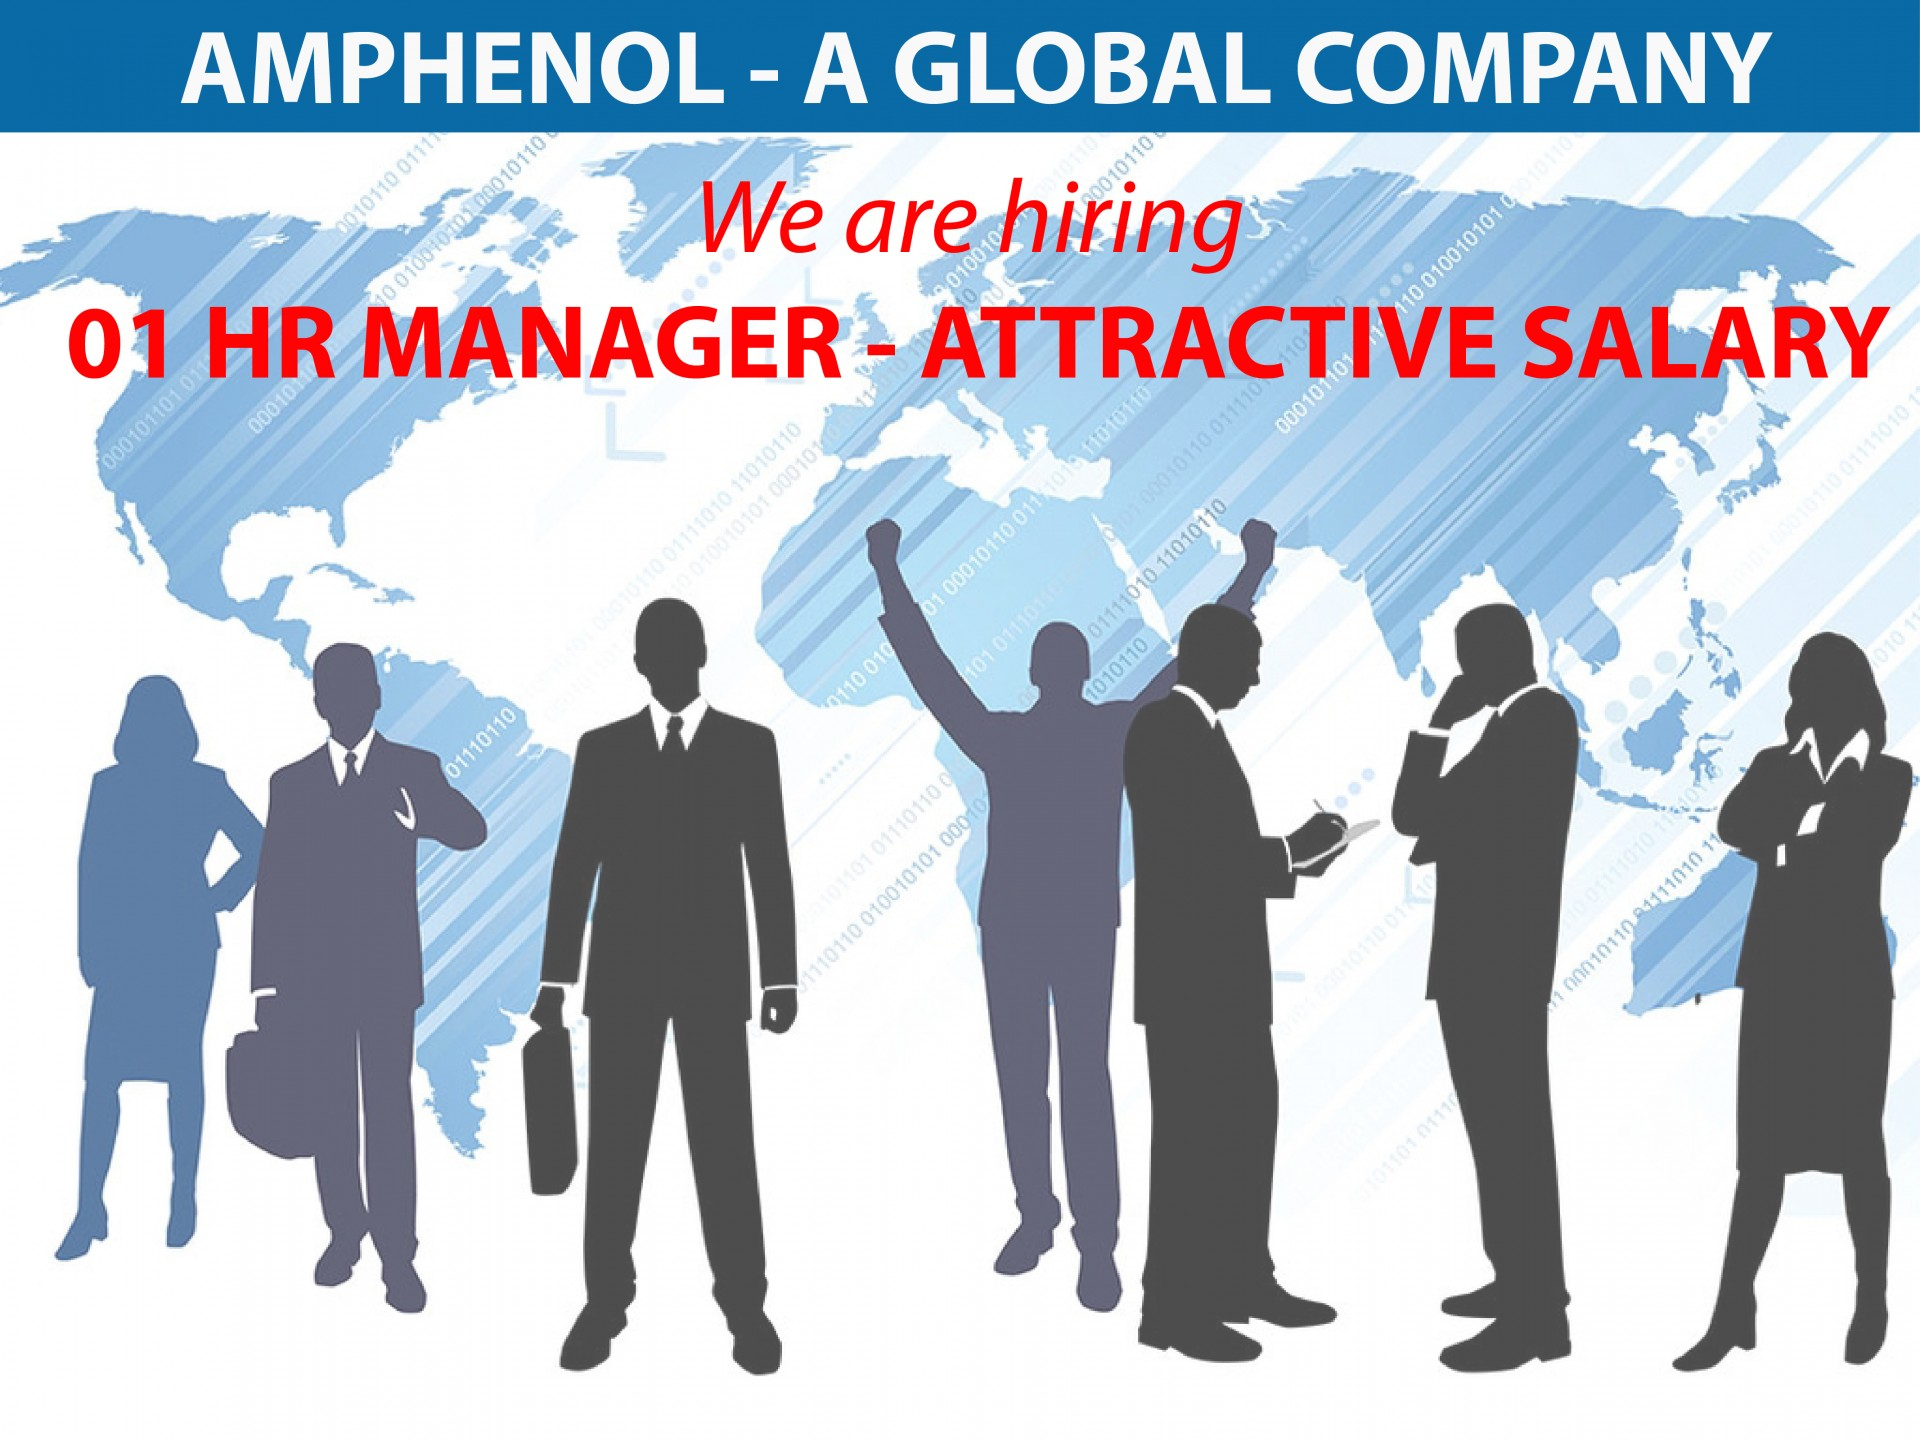 [AMPHENOL] 01 HR MANAGER – ATTRACTIVE SALARY & BENEFIT